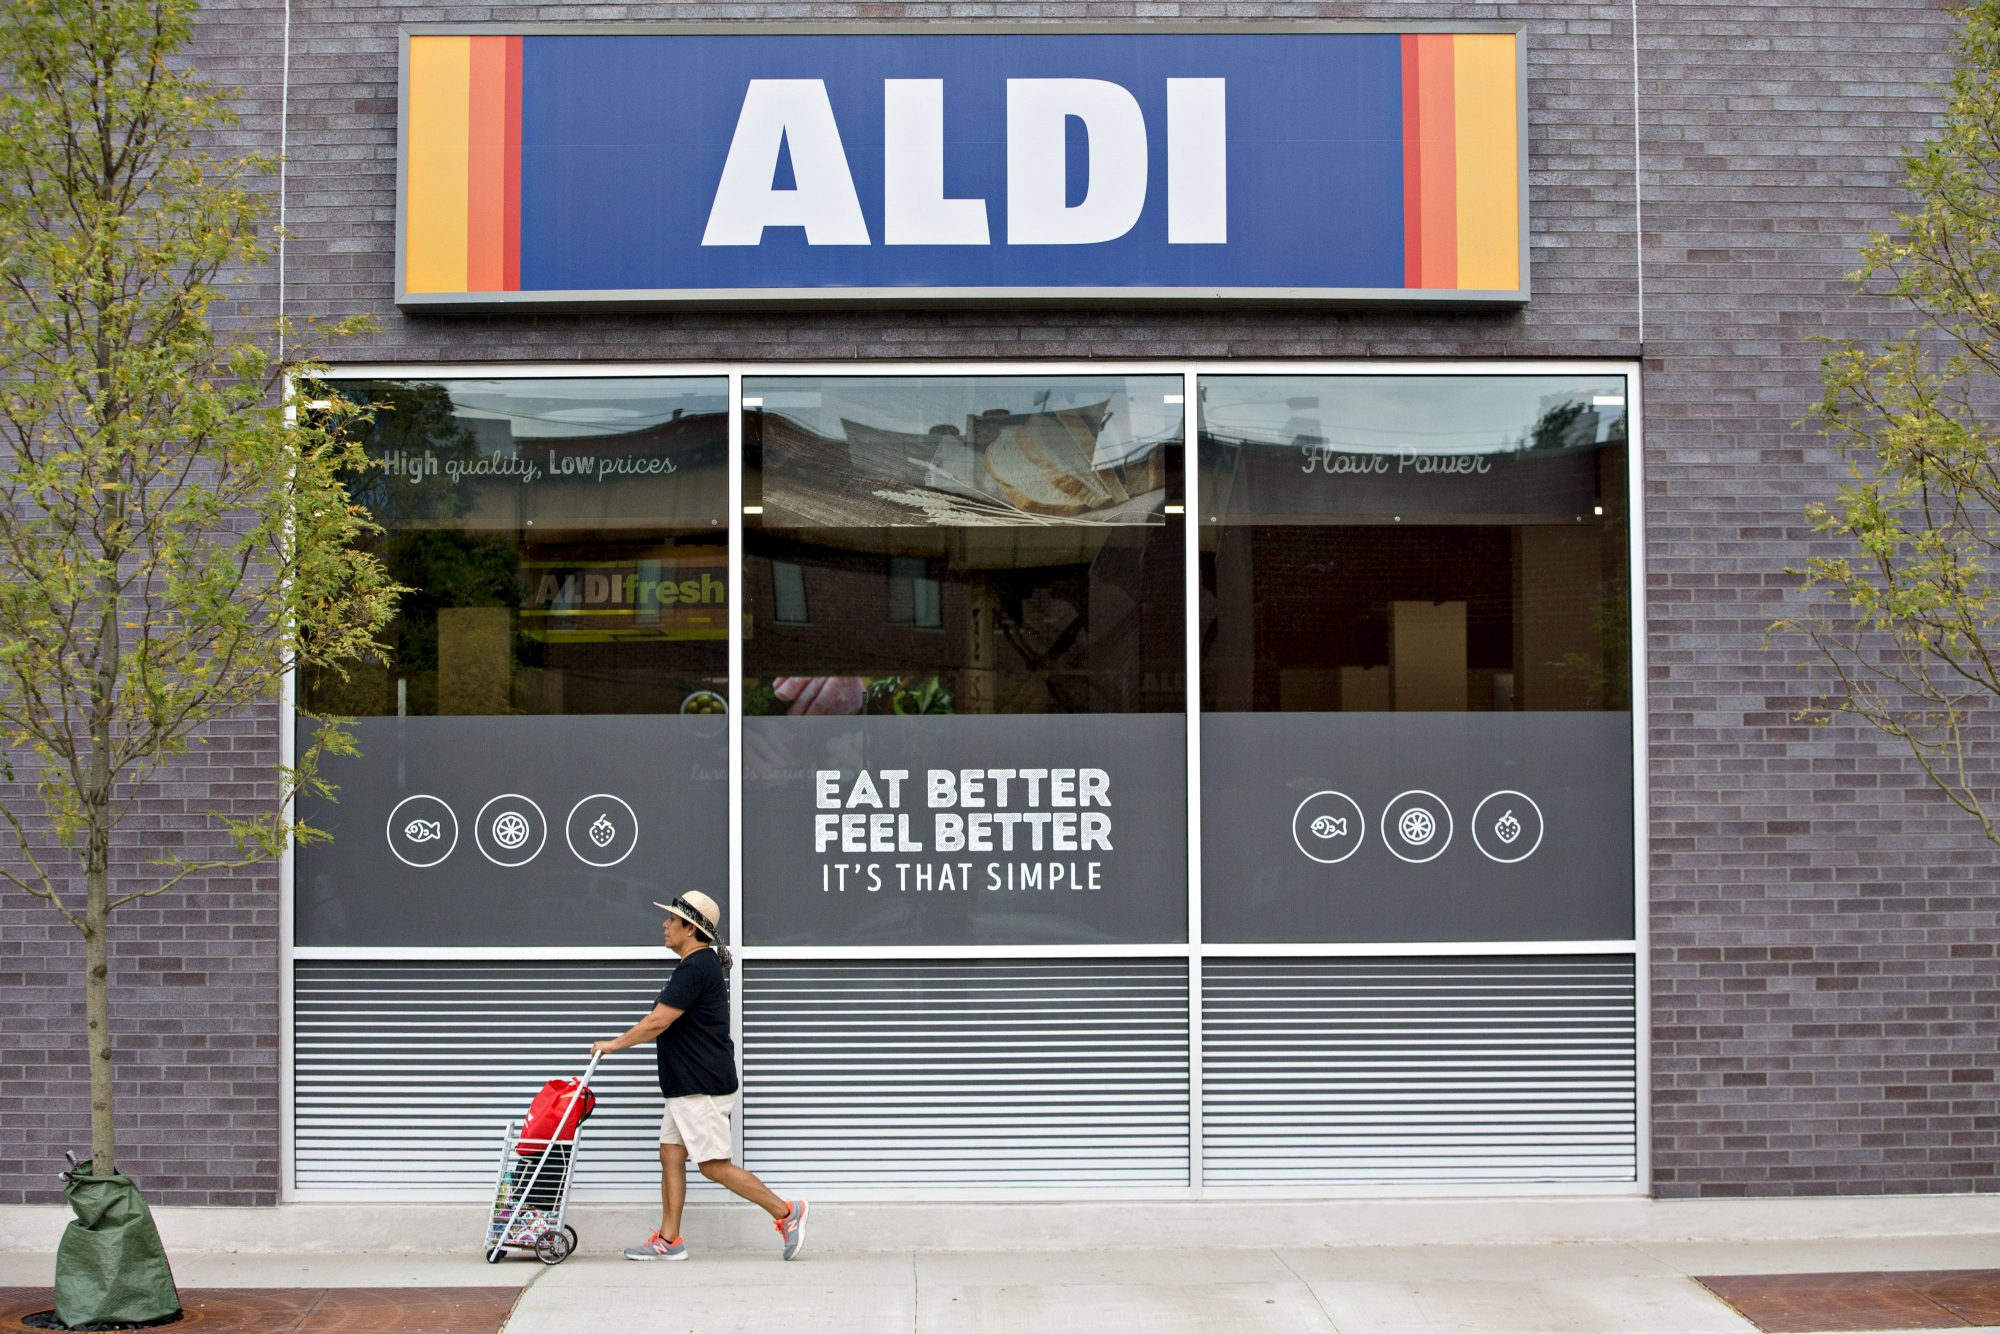 11 Pro-Tips for Shopping at Aldi | MyRecipes